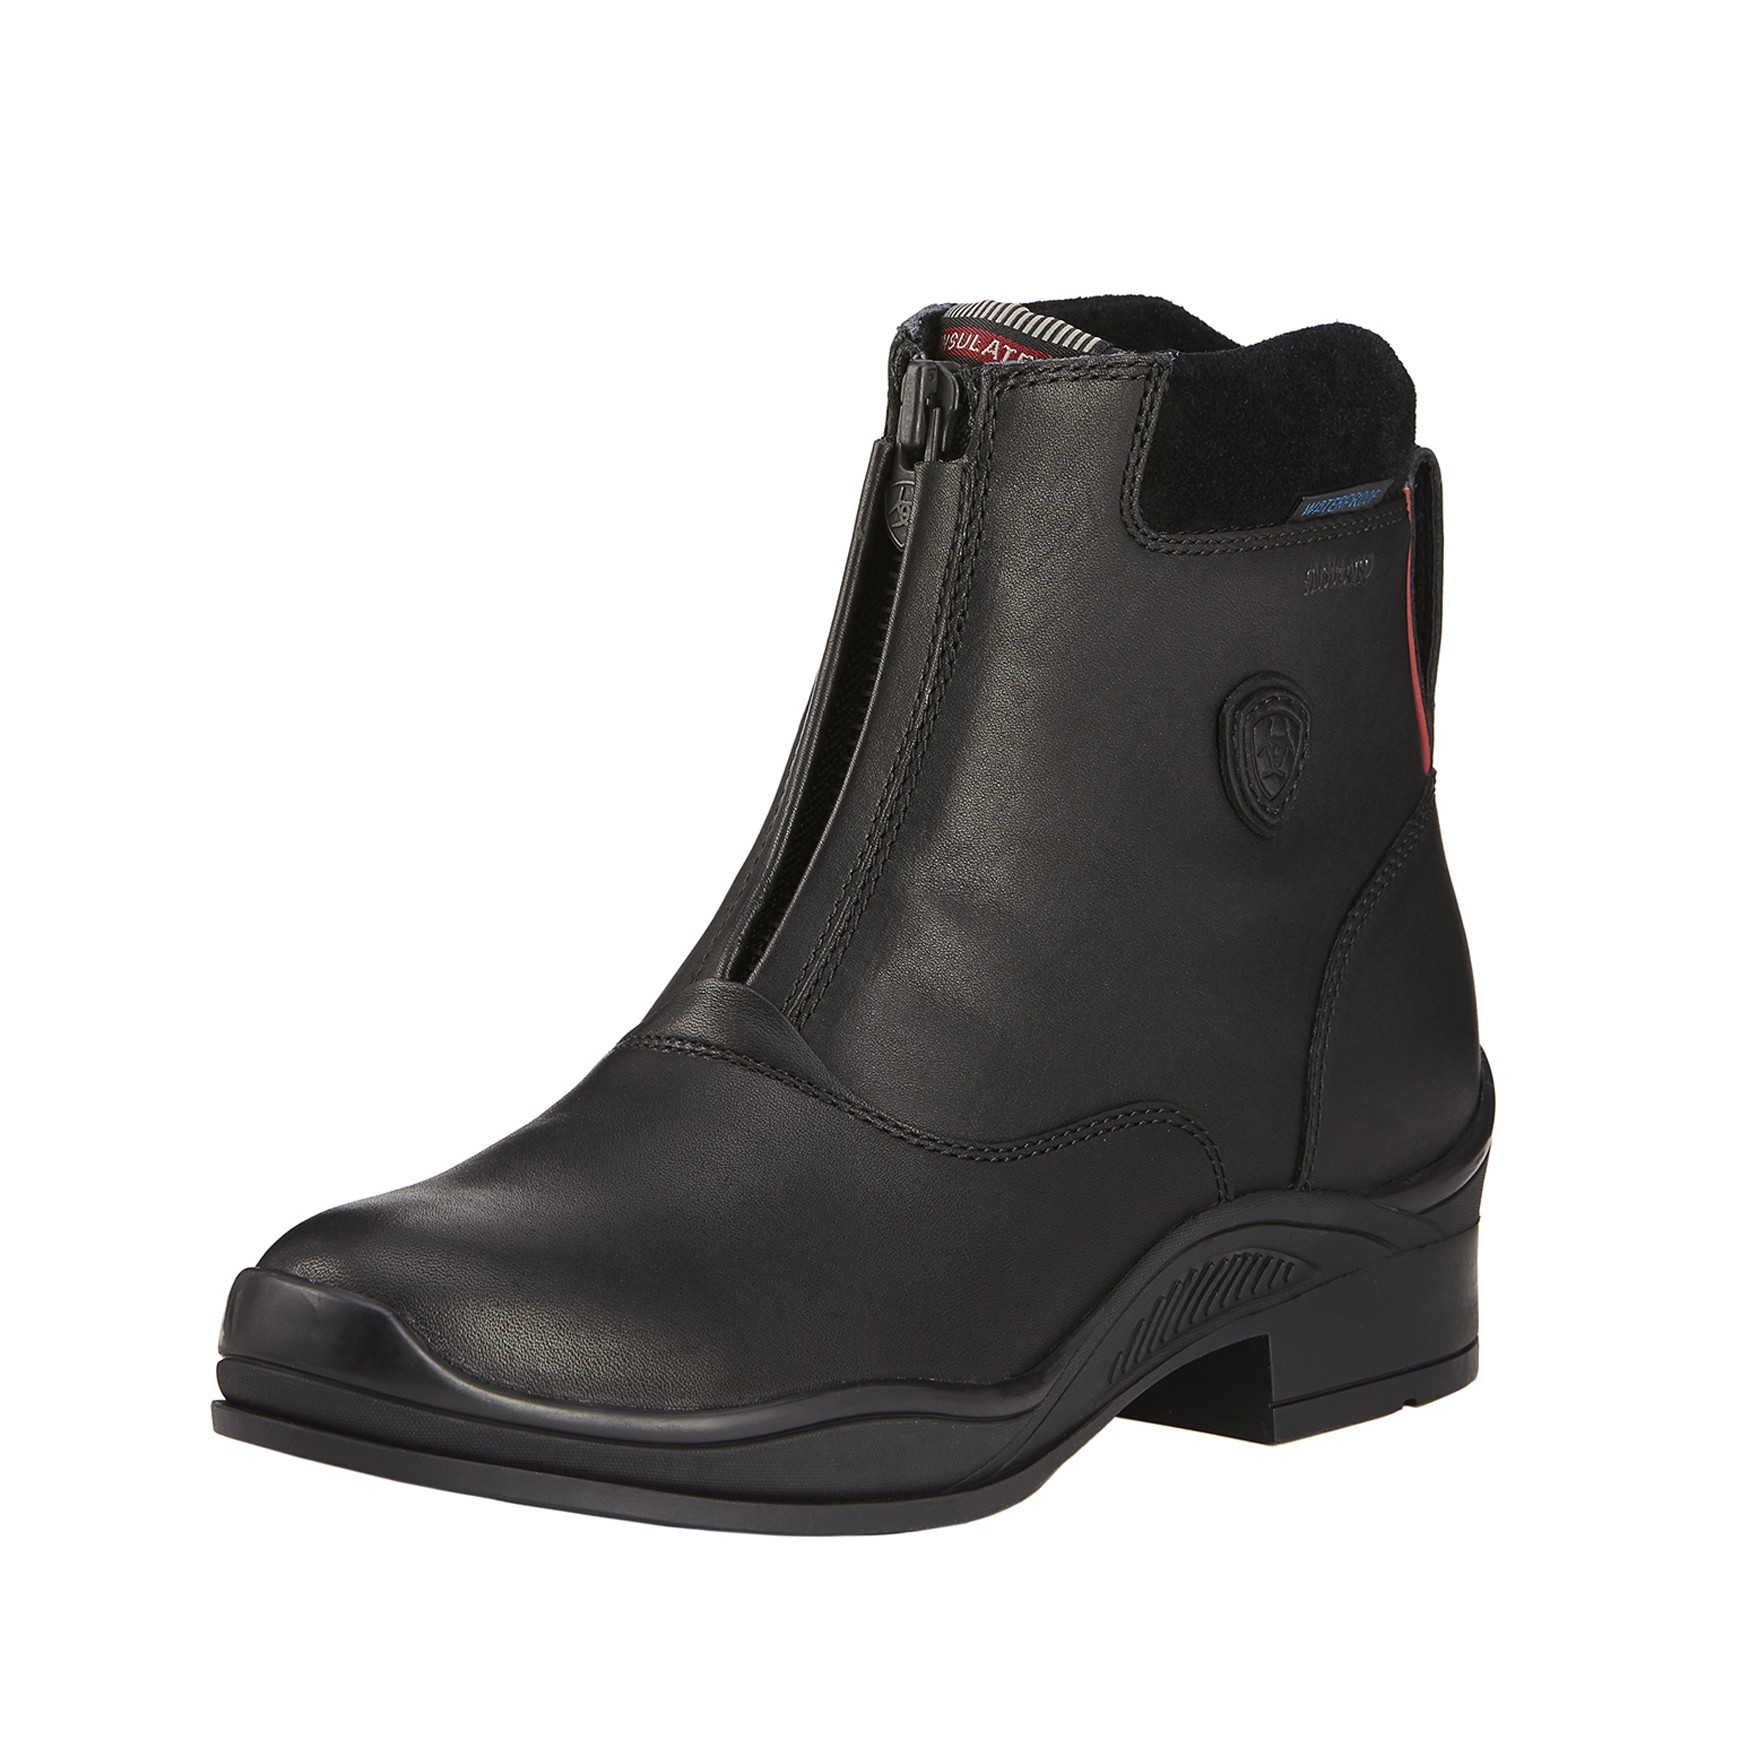 Ariat Women S Extreme H2o Insulated Zip Paddock Black